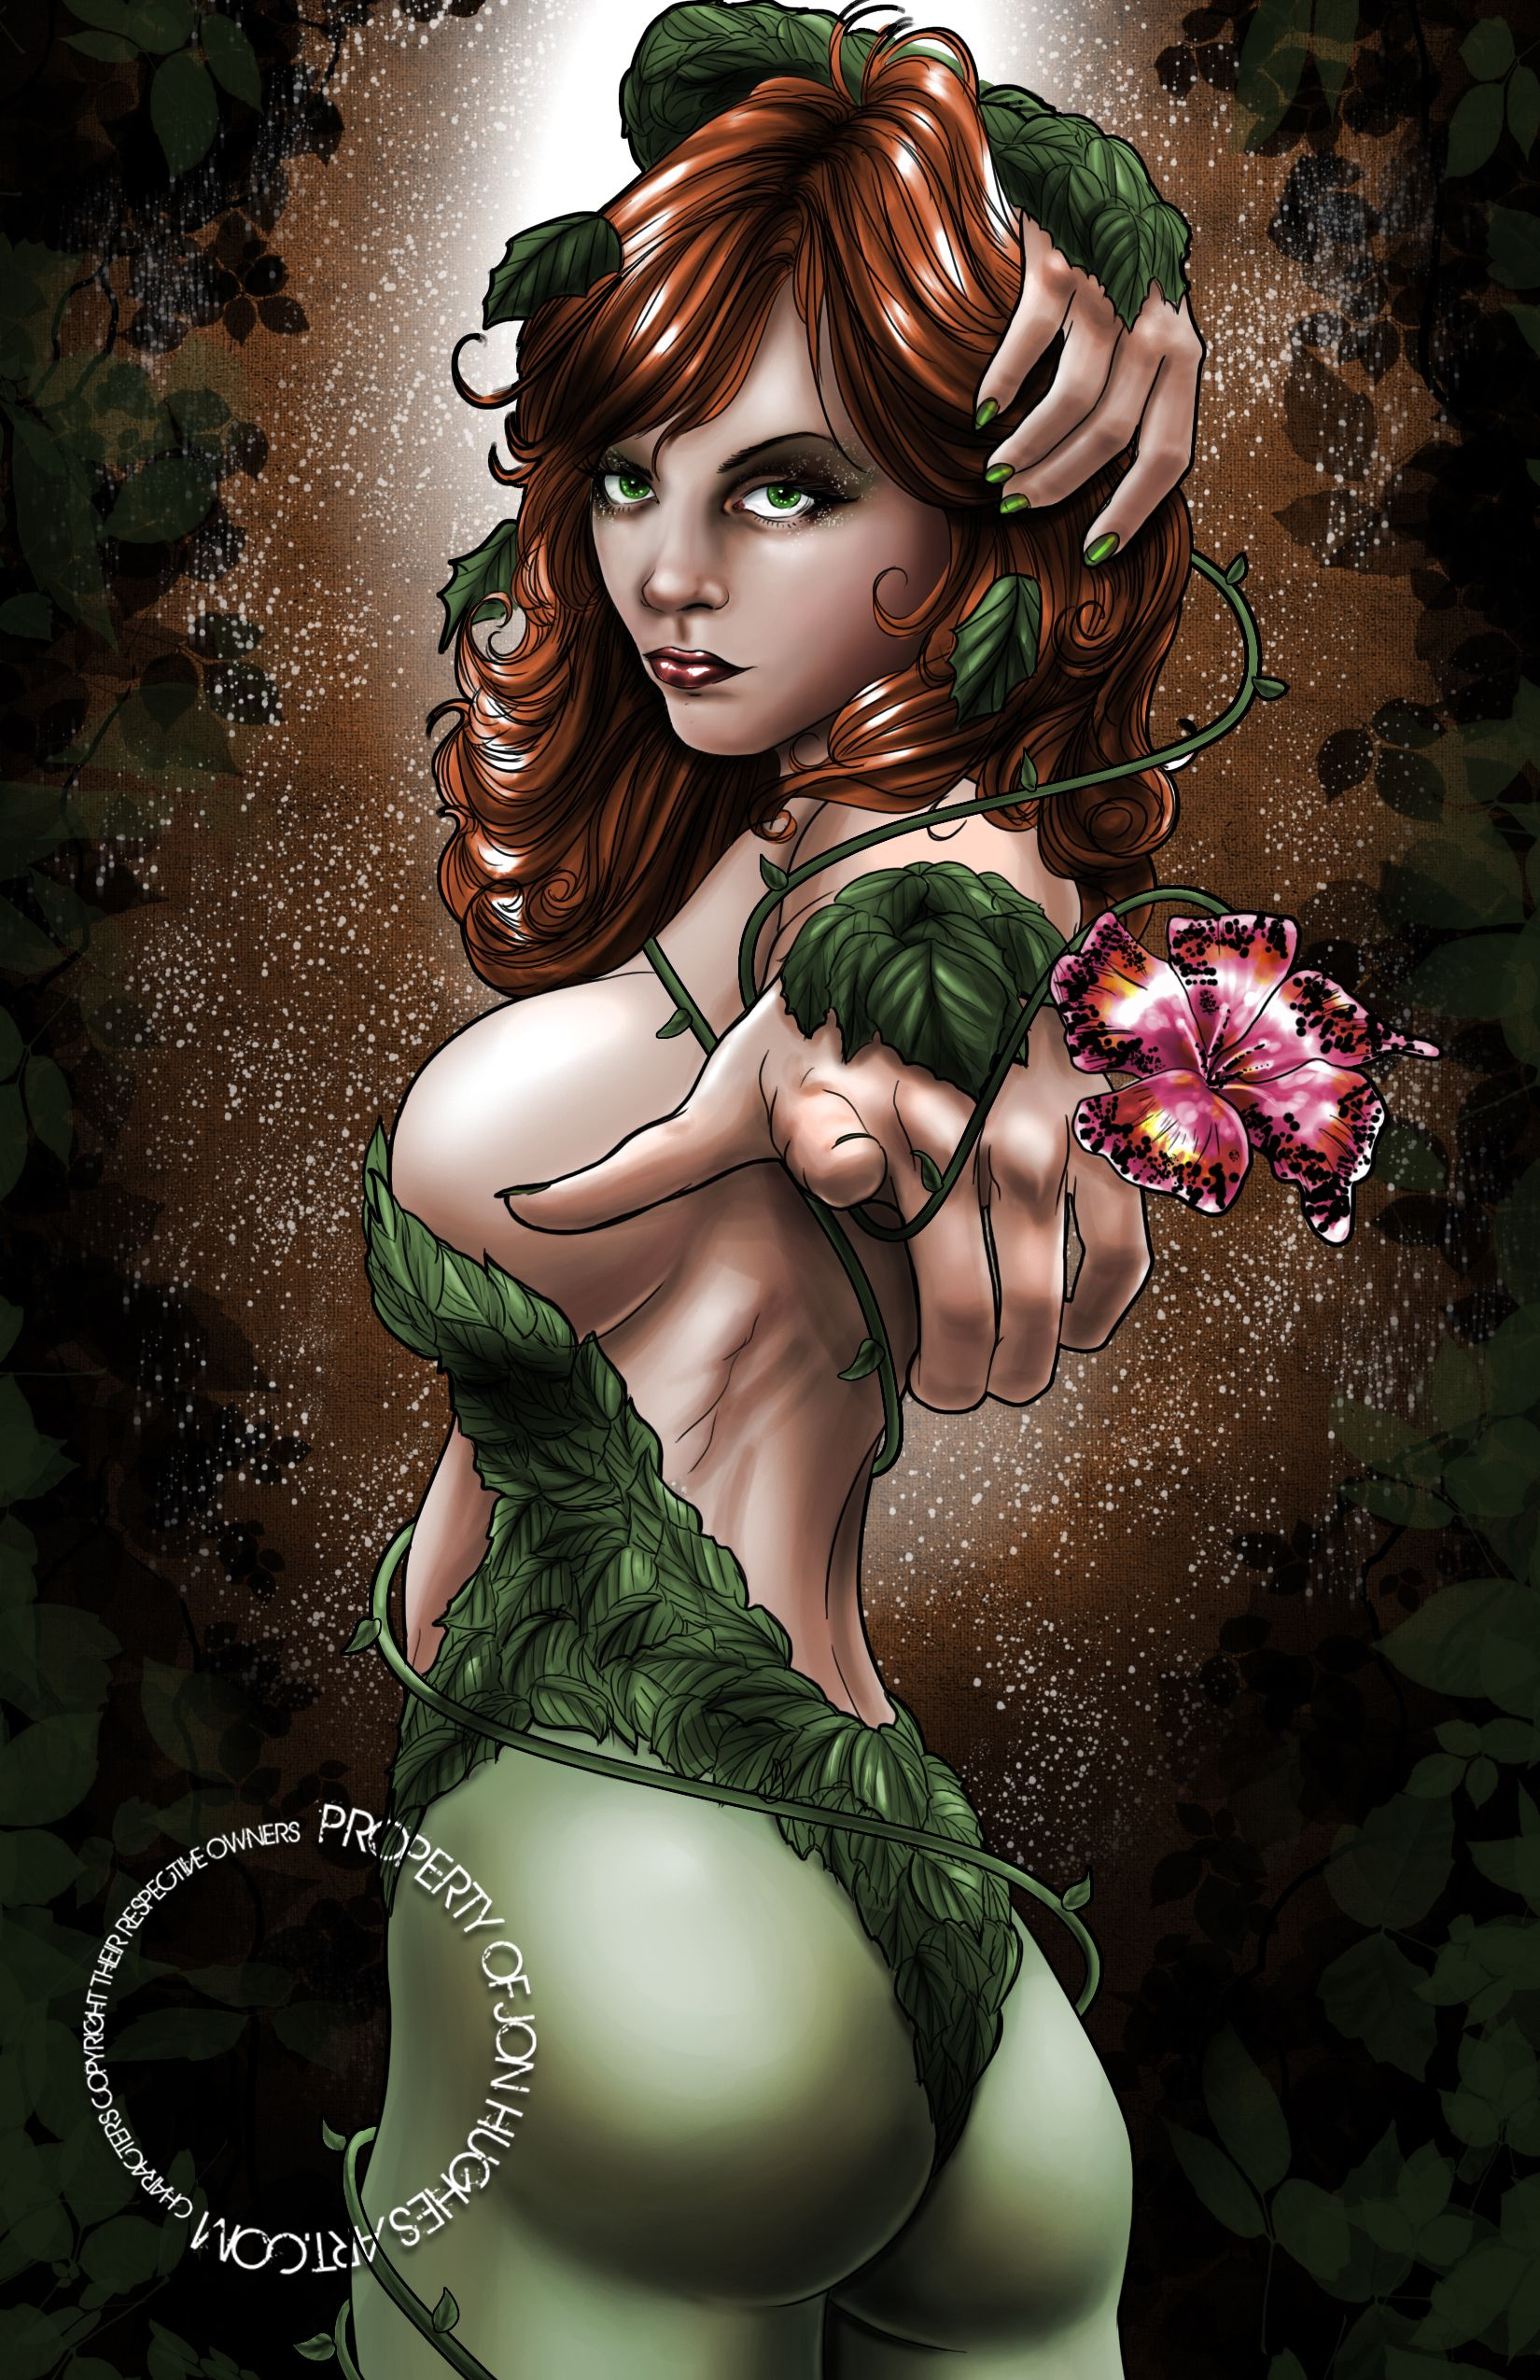 Awesome! #poisonivy #batman #dccomics #jonhughes  11 x 17 high quality cardstock, acid free art print signed by Jon Hughes. Print will not have watermark. If you want it personalized, leave your request in a note during purchase.